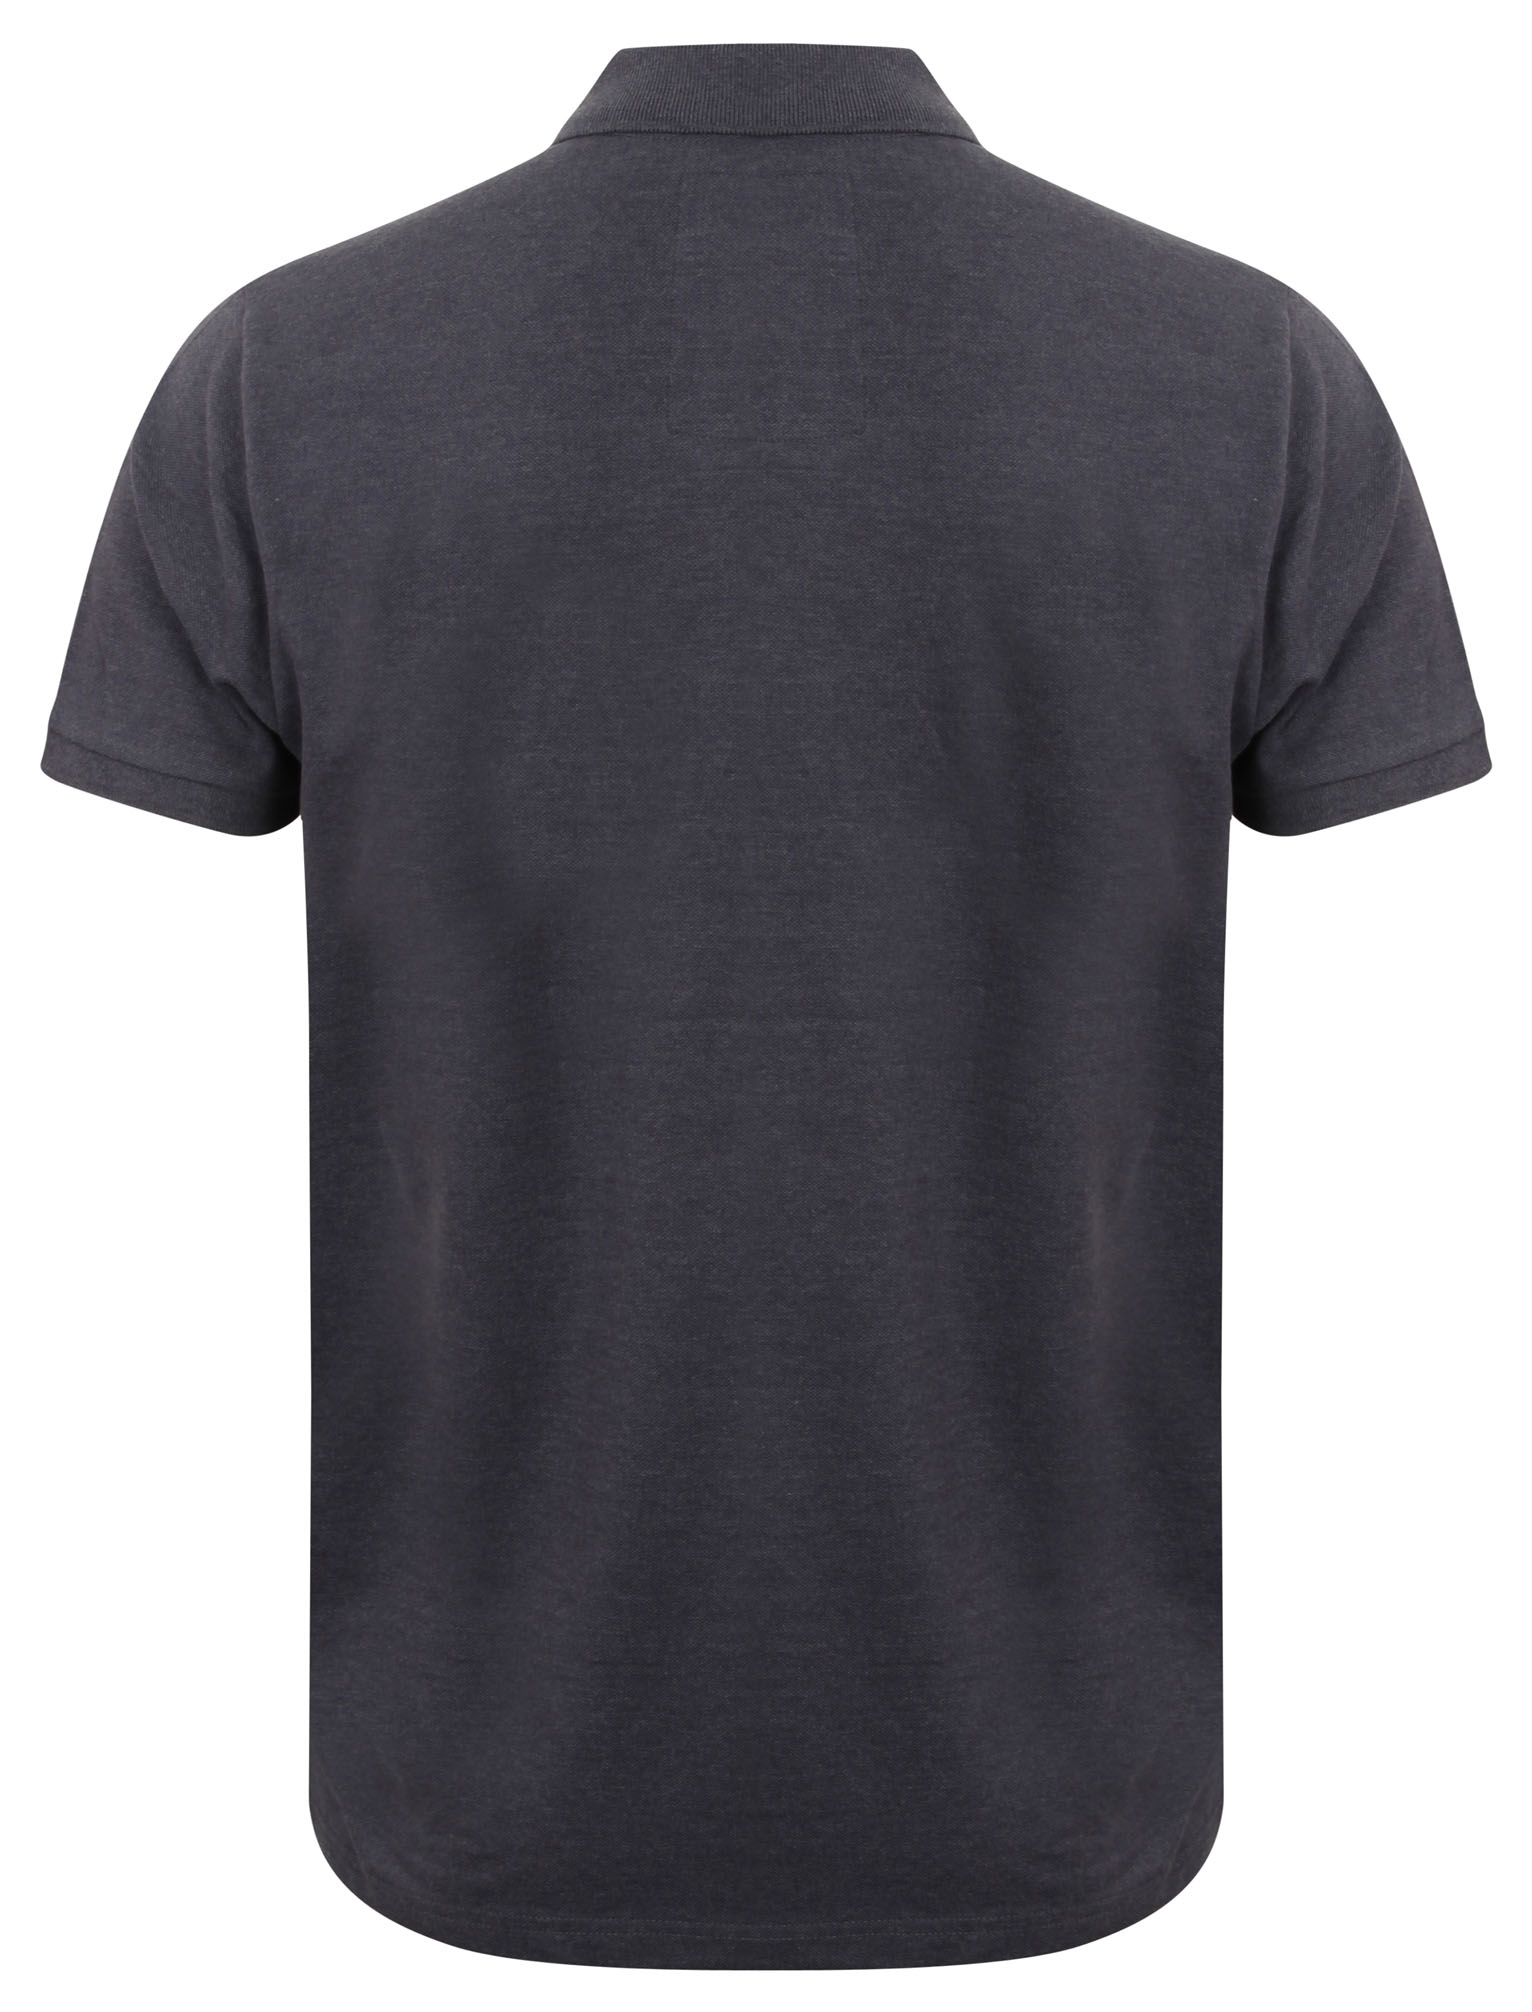 Mens-Tokyo-Laundry-Cotton-Classic-Casual-Short-Sleeve-Polo-Shirt-Top-Size-S-XXL thumbnail 23